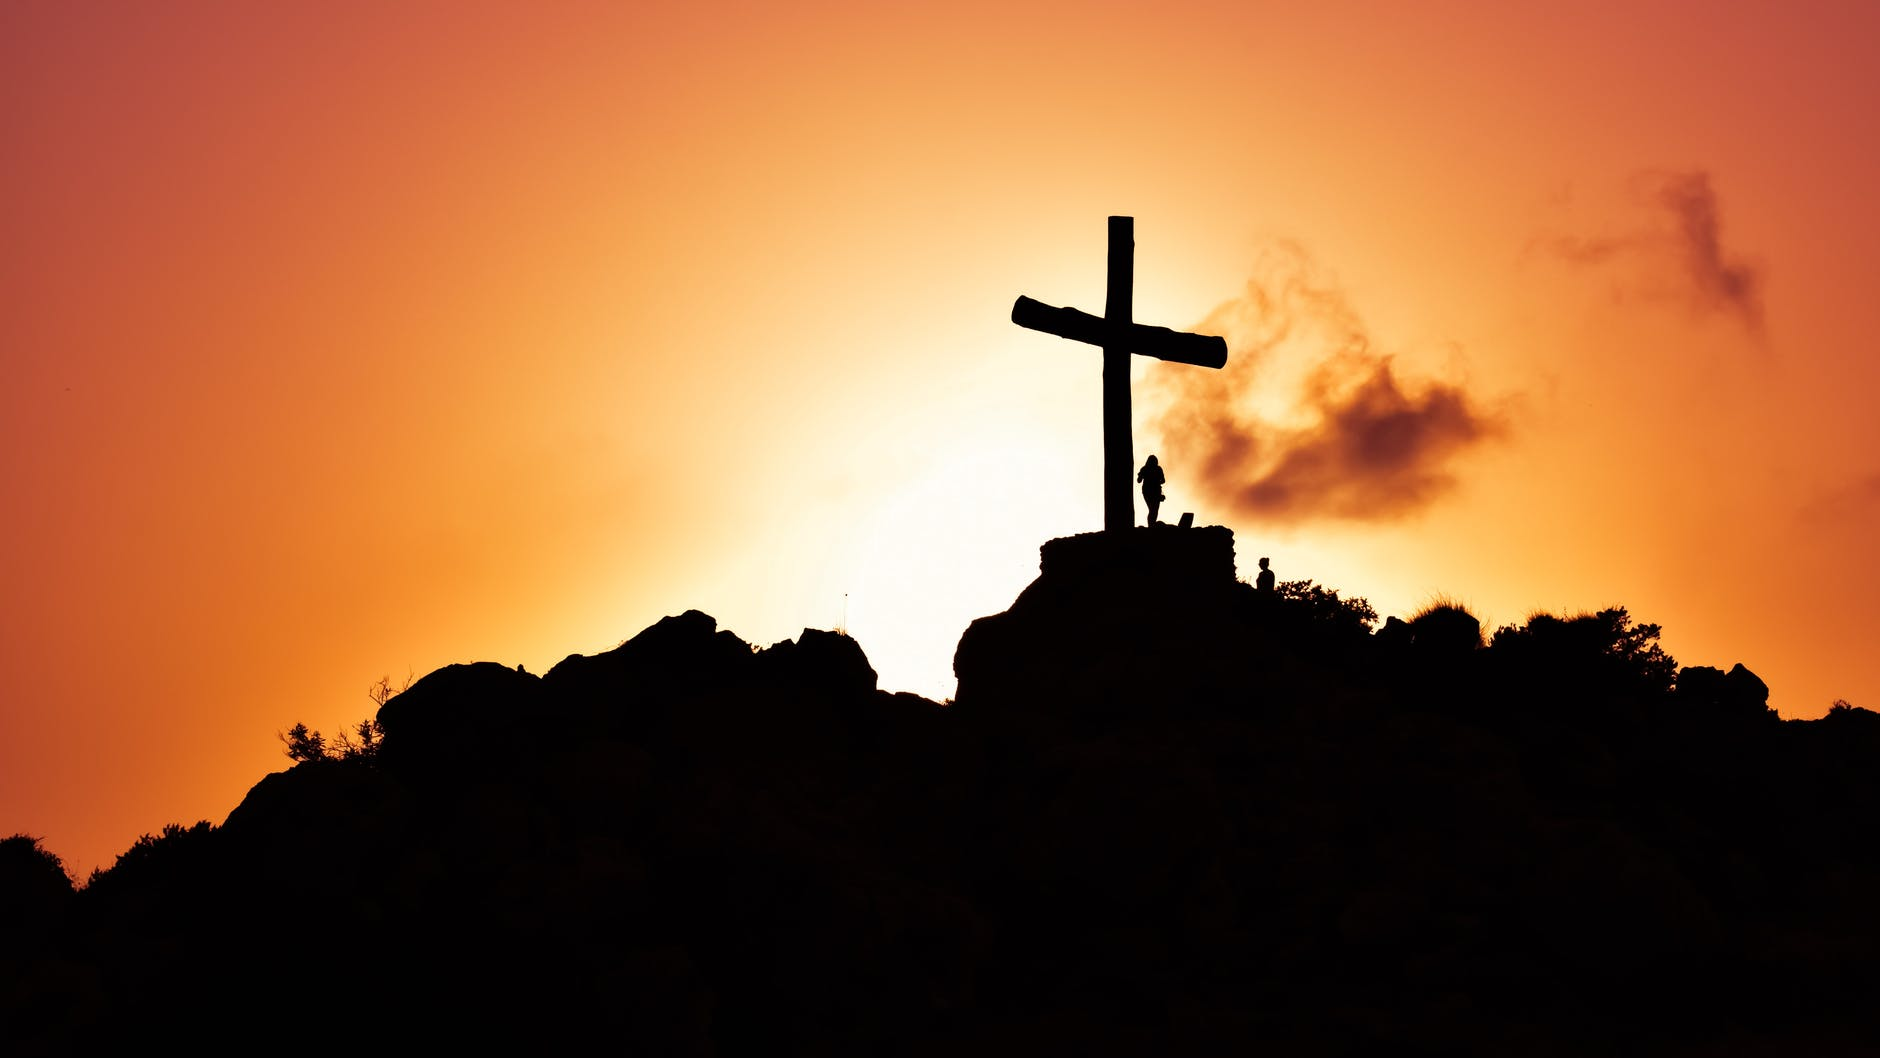 A silhouette of  a cross against the orange sky of a sunrise.